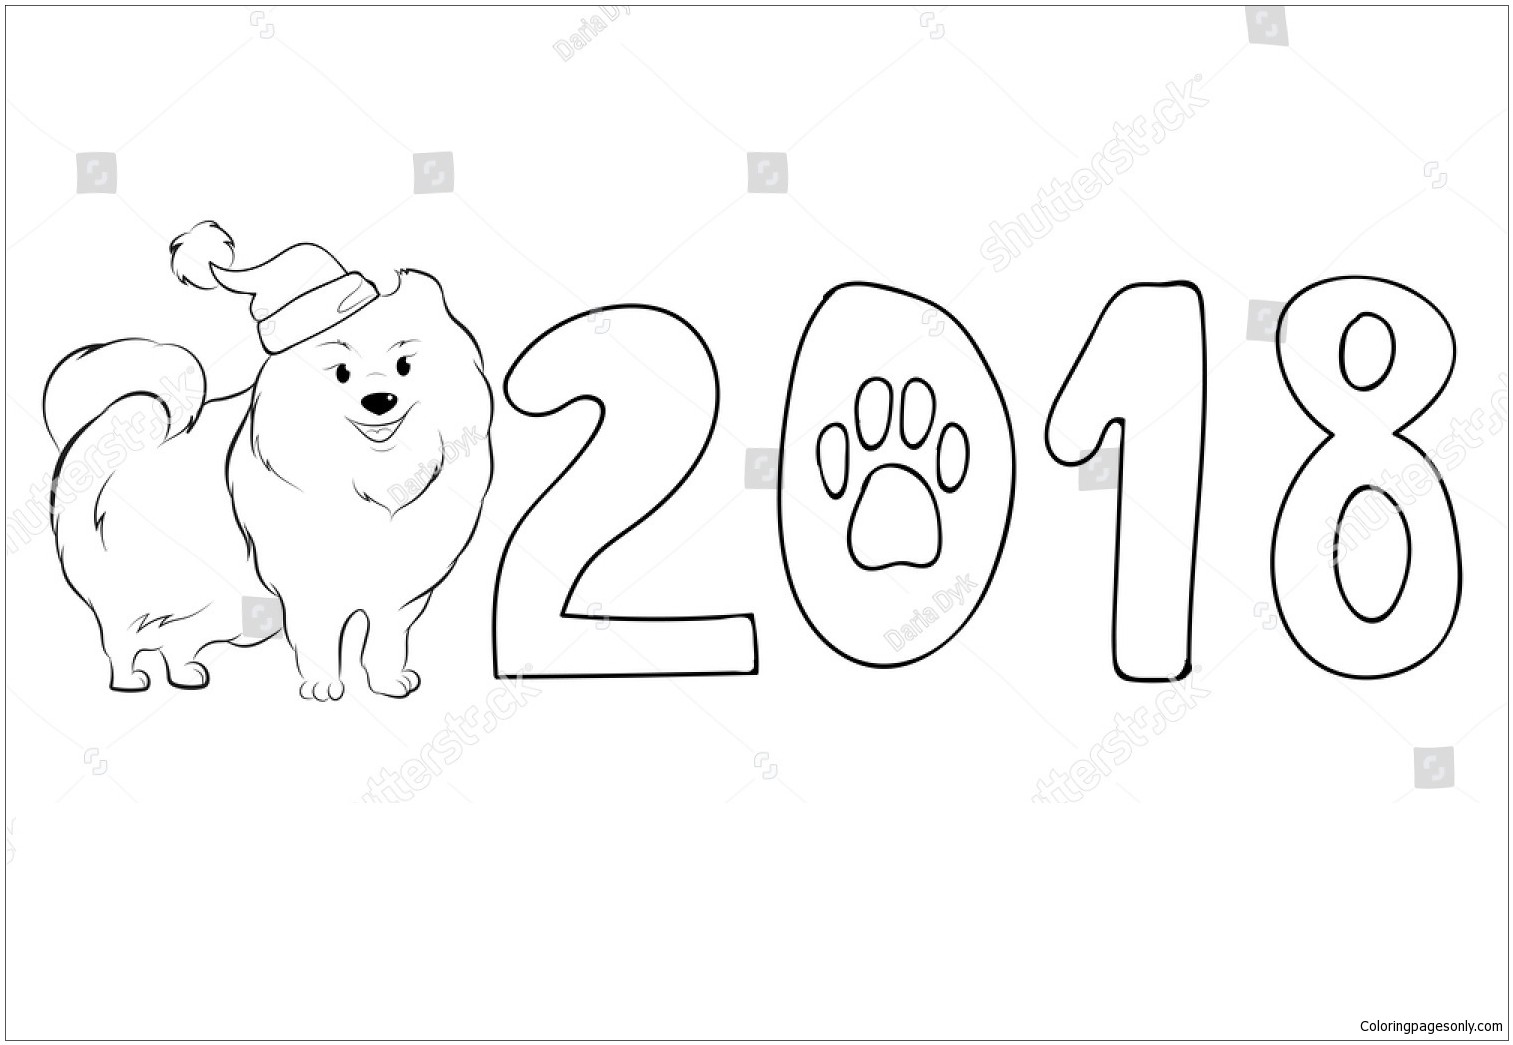 Cute Pomeranian Santa Coloring Page - Free Coloring Pages Online